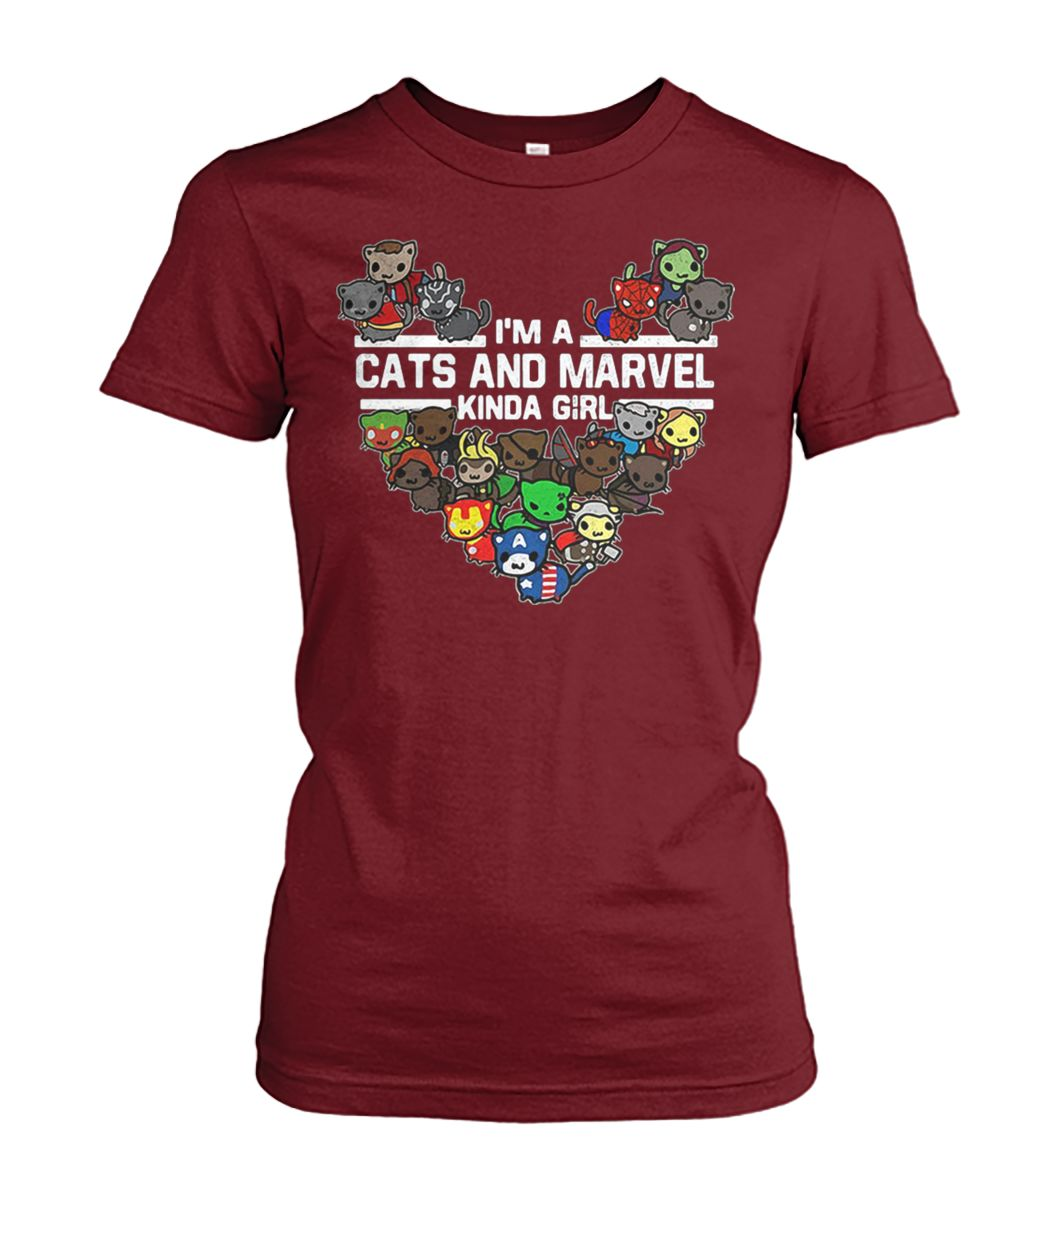 [Hot version] Marvel avengers endgame I'm a cats and Marvel kinda girl shirt